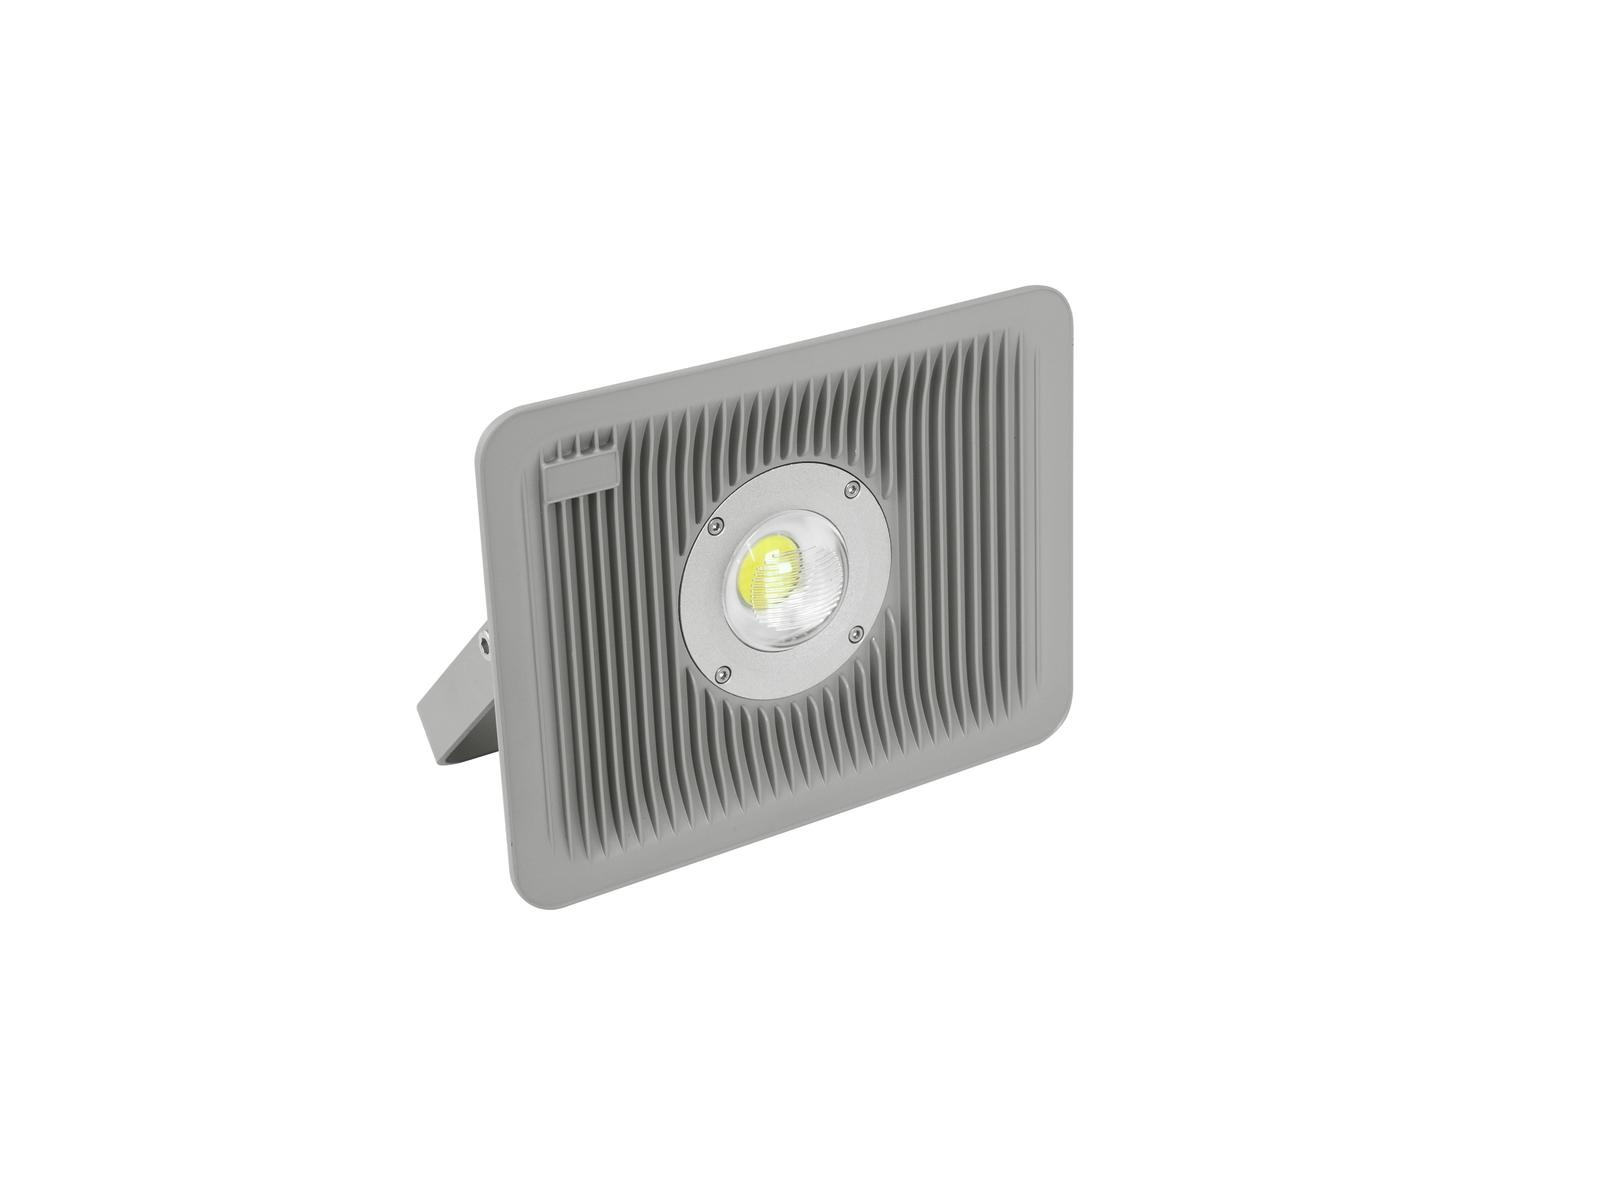 Eurolite LED reflektor IP FL-30 Slim, 1x 30W COB, 3000K, 120°, IP6